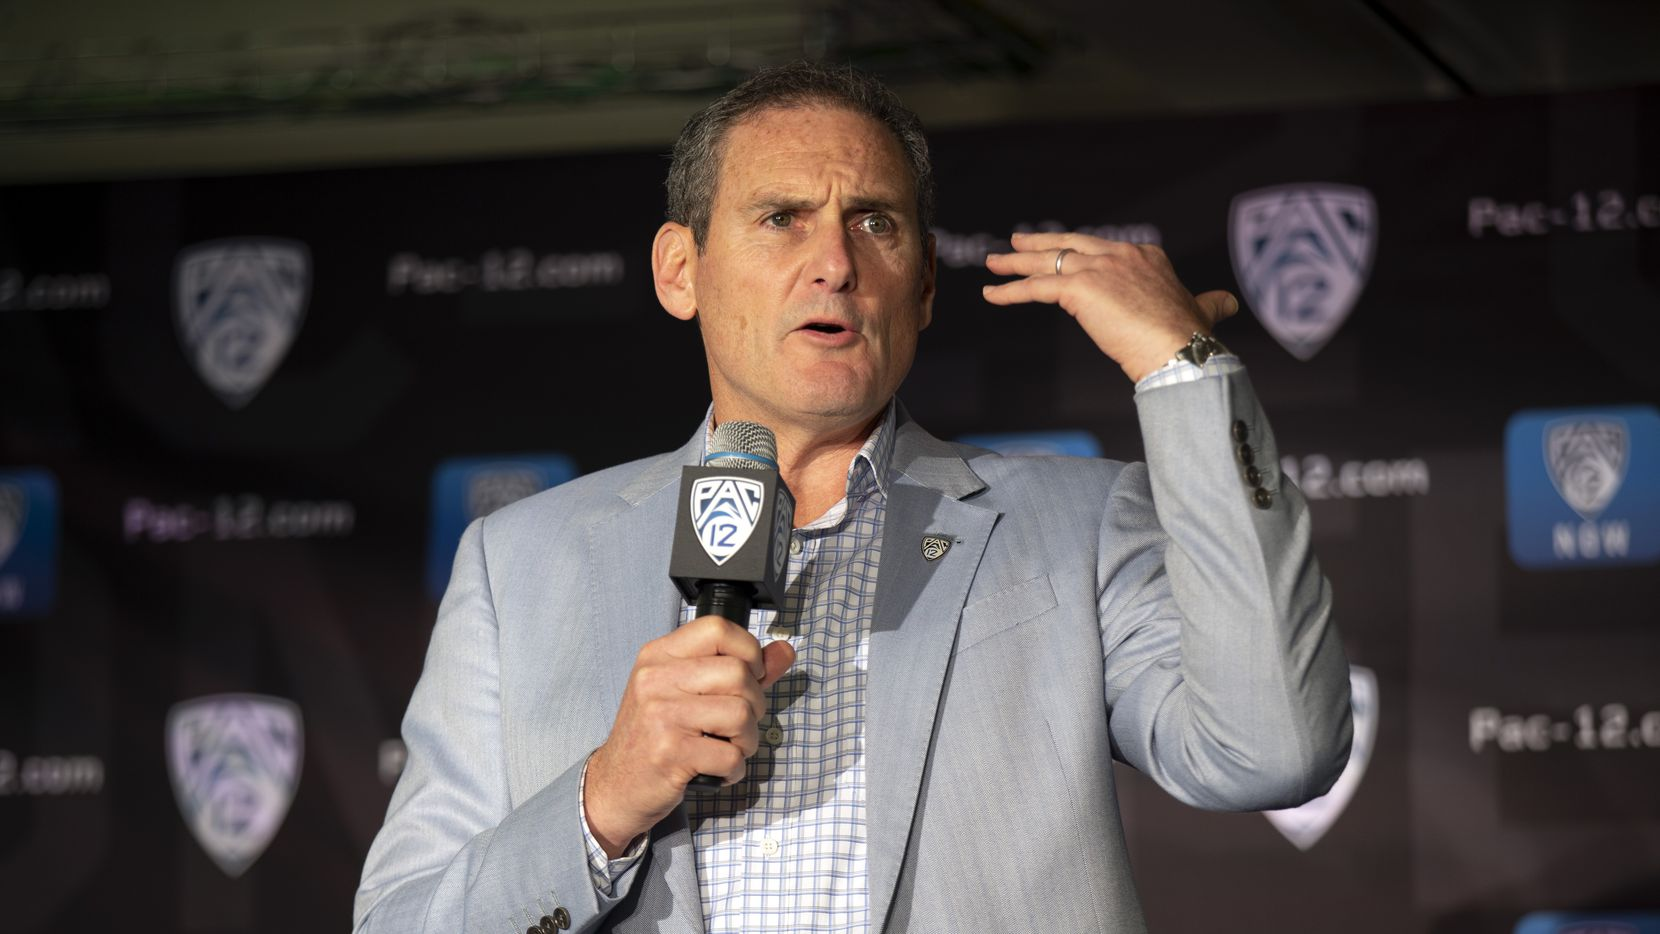 """FILE - In this Oct. 8, 2019, file photo, commissioner Larry Scott speaks during the Pac-12 NCAA college basketball media day, in San Francisco. The commissioners of the Atlantic Coast Conference, Big Ten, Big 12, Pac-12 and Southeastern Conference say they have been in almost constant contact since the NCAA men's basketball tournament was canceled on March 12."""" Based on the very positive and close collaboration among the leaders in college football and discussions with schools, other leagues and the medical community, at this point in time we are planning to start the football season on time and together on a national basis,"""" Pac-12 Commissioner Larry Scott said."""